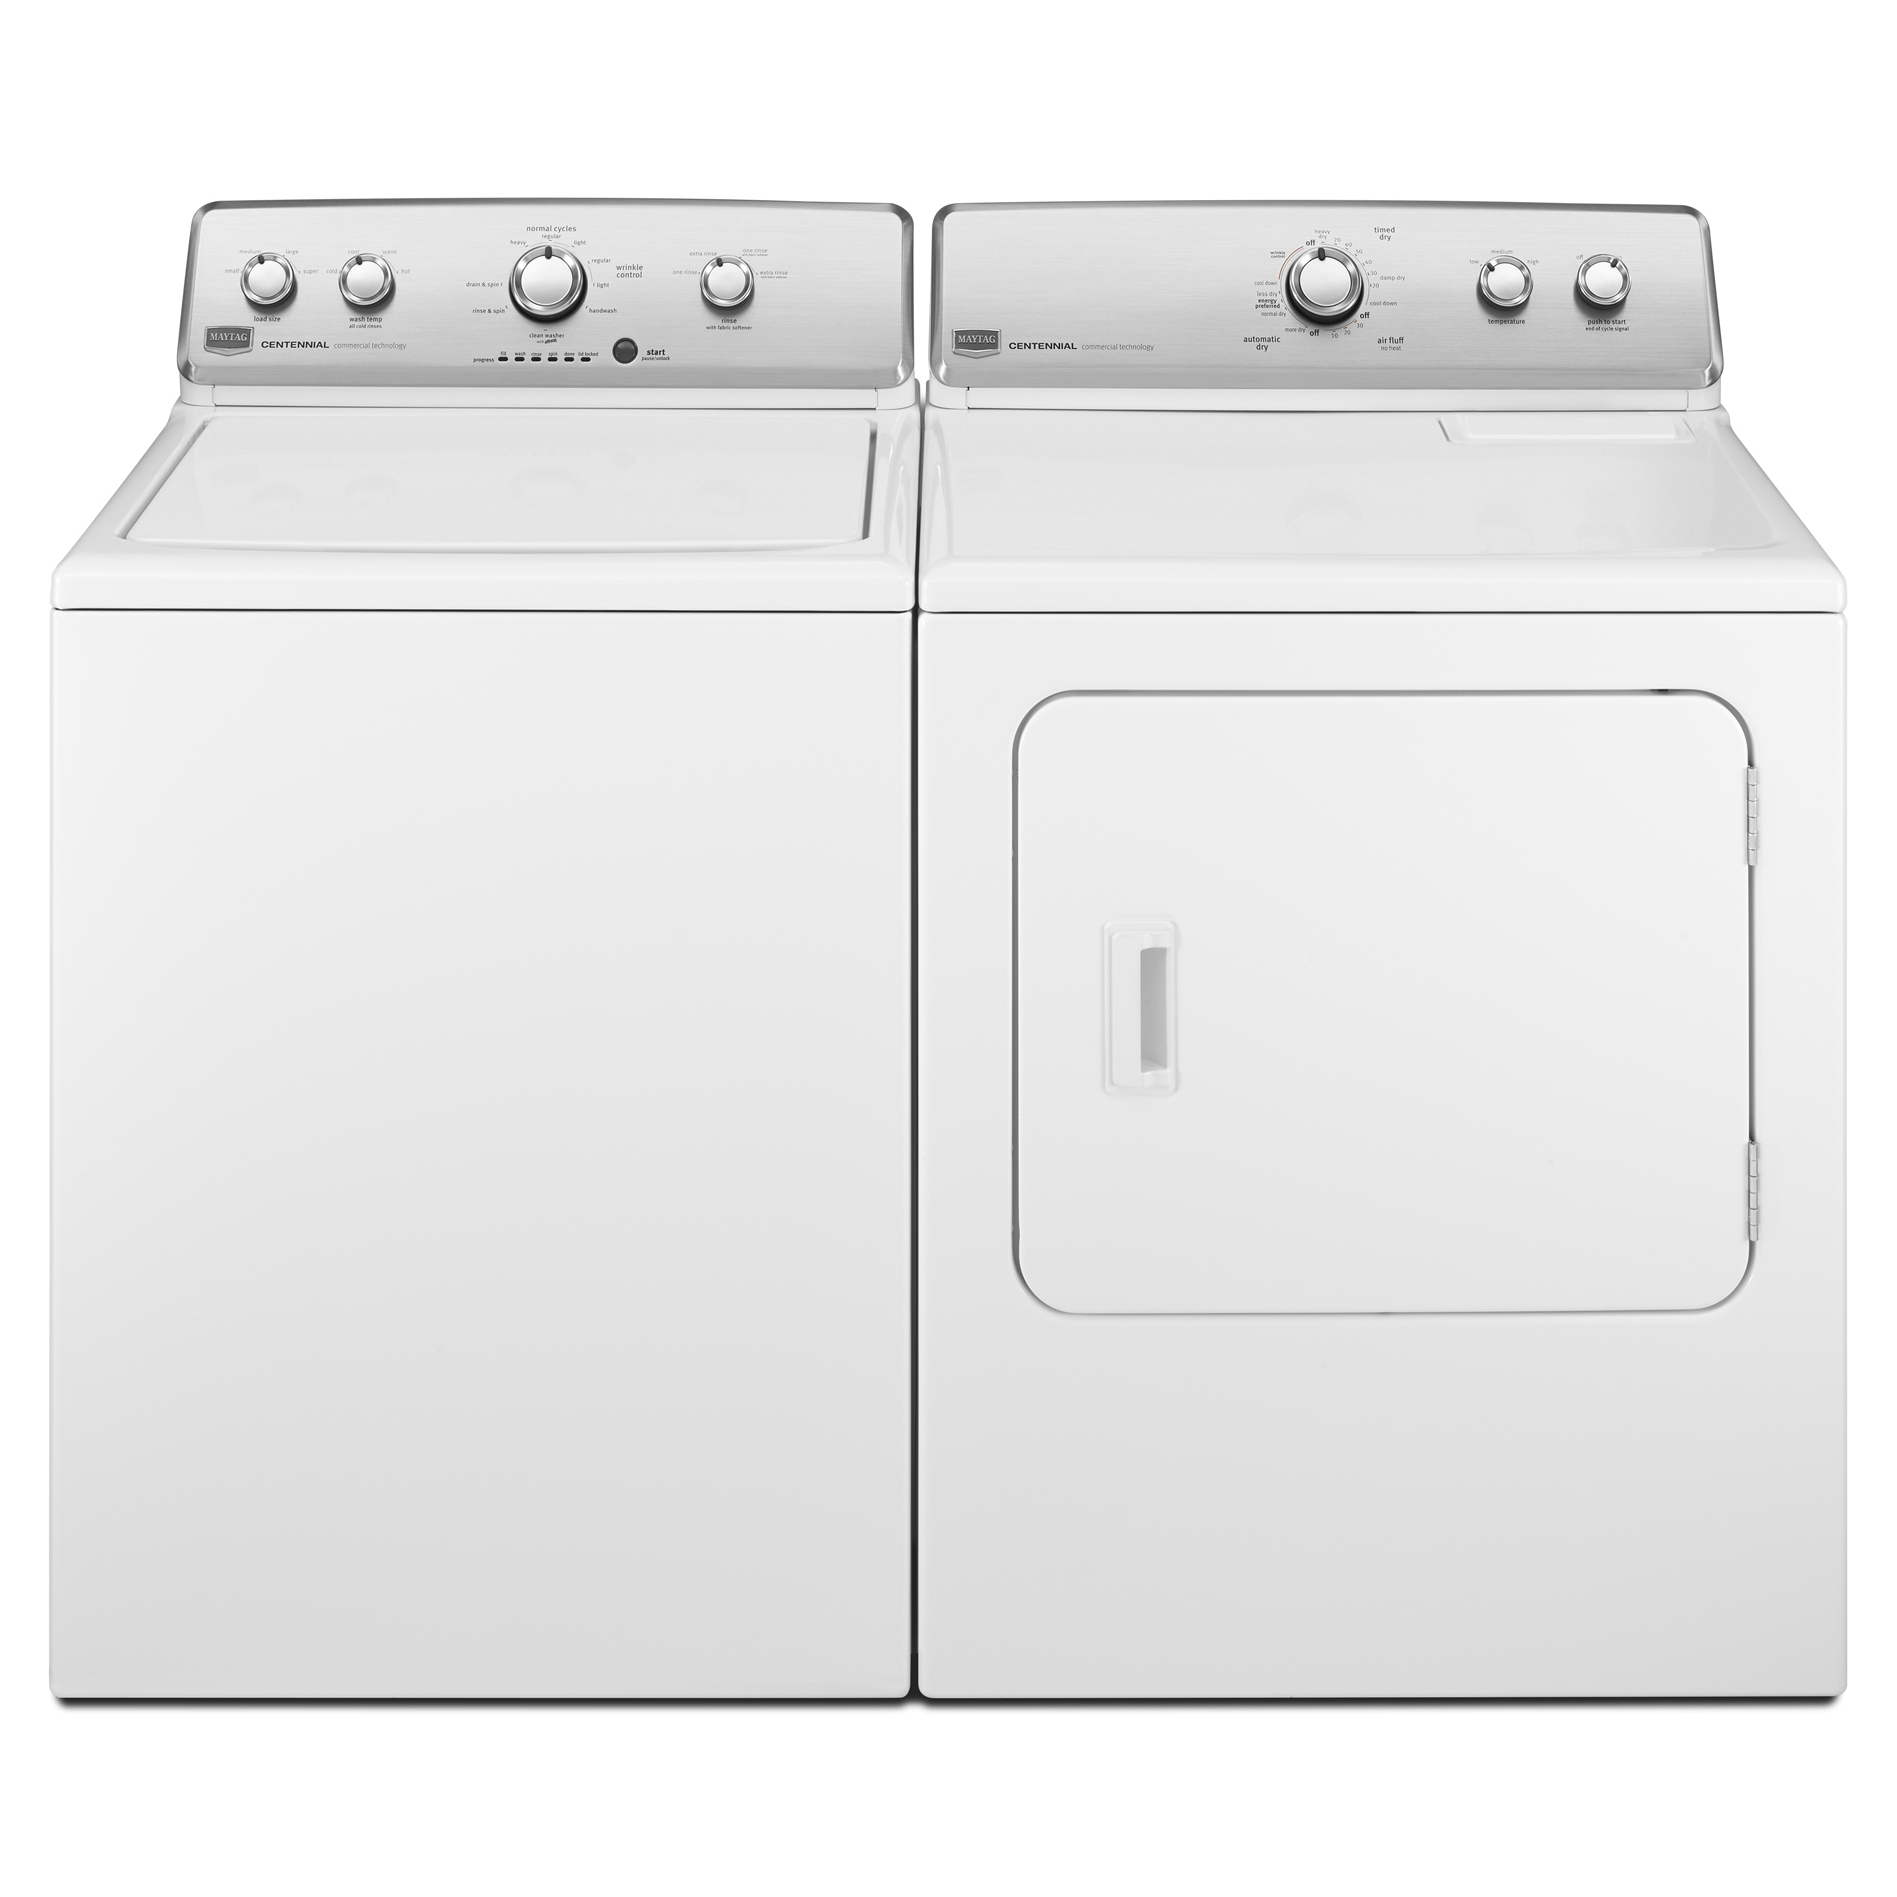 Maytag 7.0 cu. ft. Centennial® Electric Dryer w/ Wrinkle Control - White